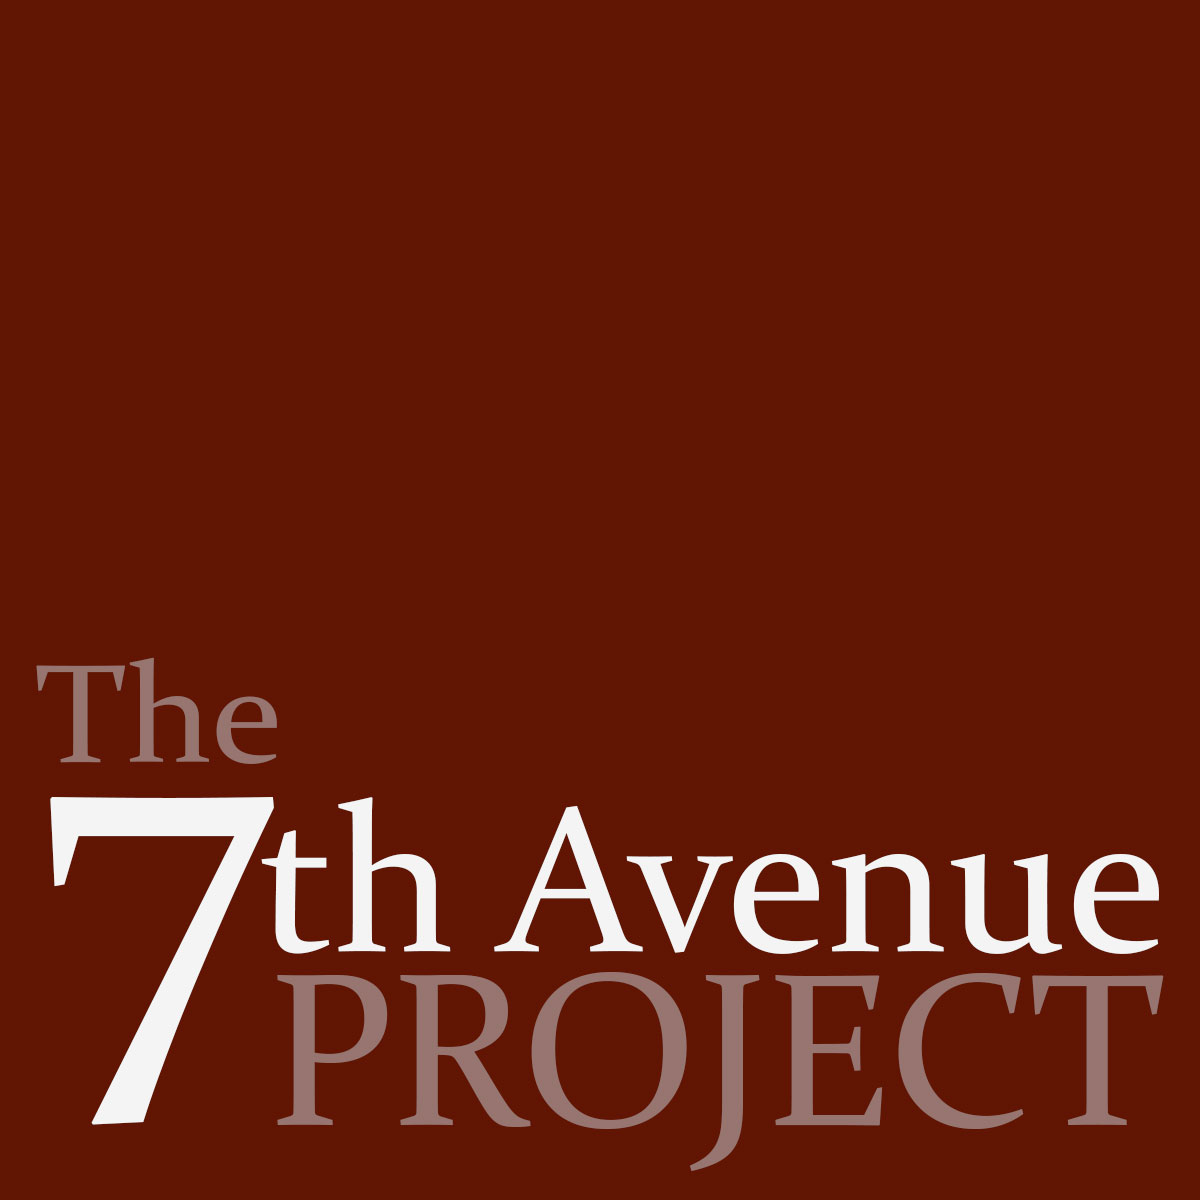 The 7th Avenue Project